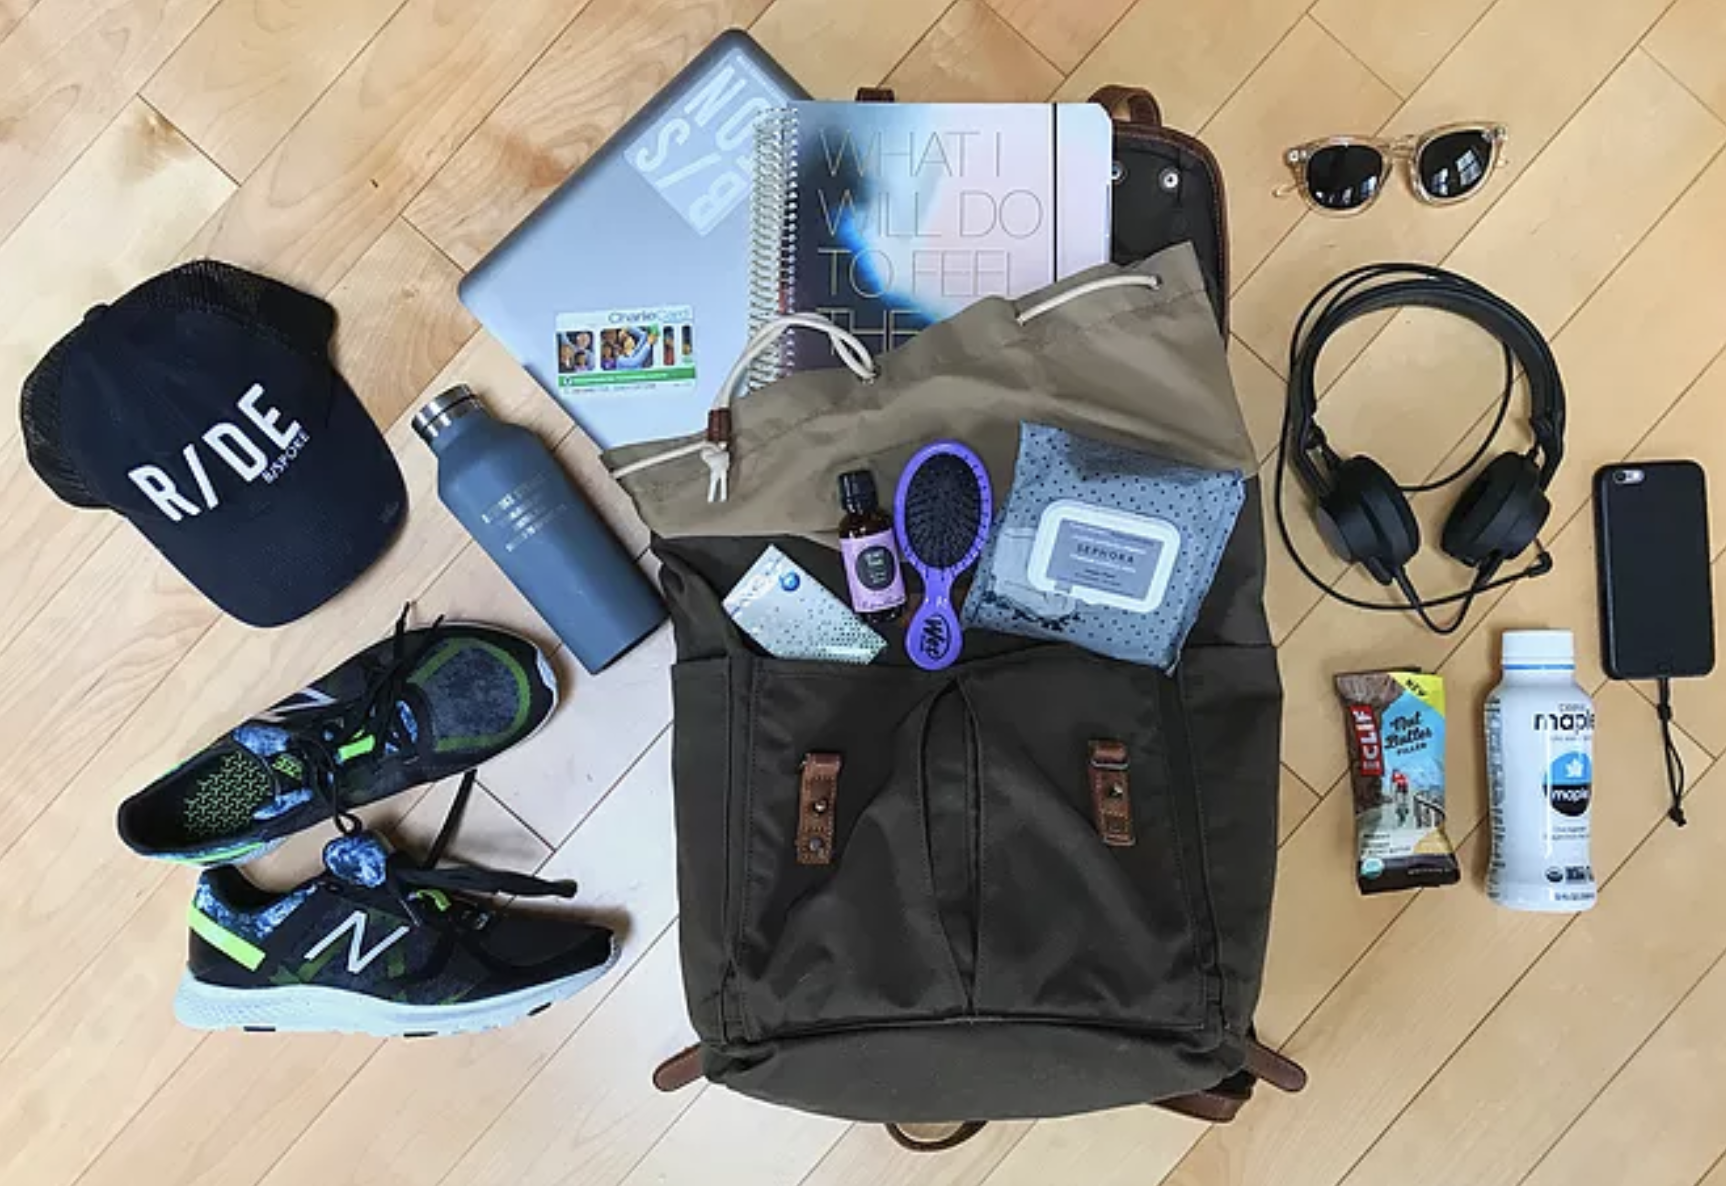 What's in Aly Raymer's Bag? - For most of us, simply remembering to pack a gym bag is a victory. But for those who've made careers out of health and fitness, it's all in a day's work. In this series, we'll take you inside those expertly packed bags.